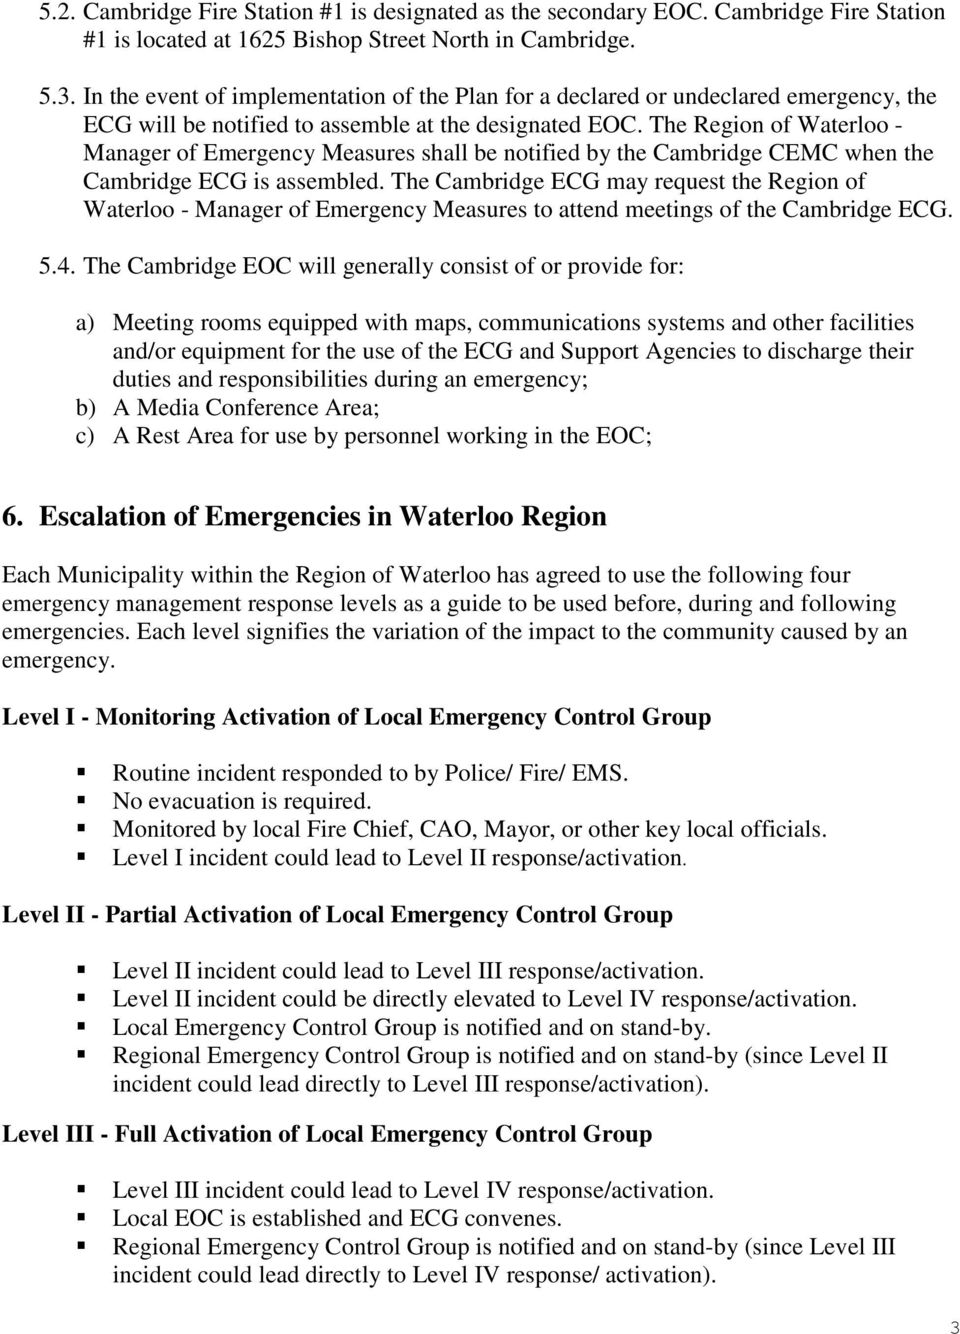 The Region of Waterloo - Manager of Emergency Measures shall be notified by the Cambridge CEMC when the Cambridge ECG is assembled.